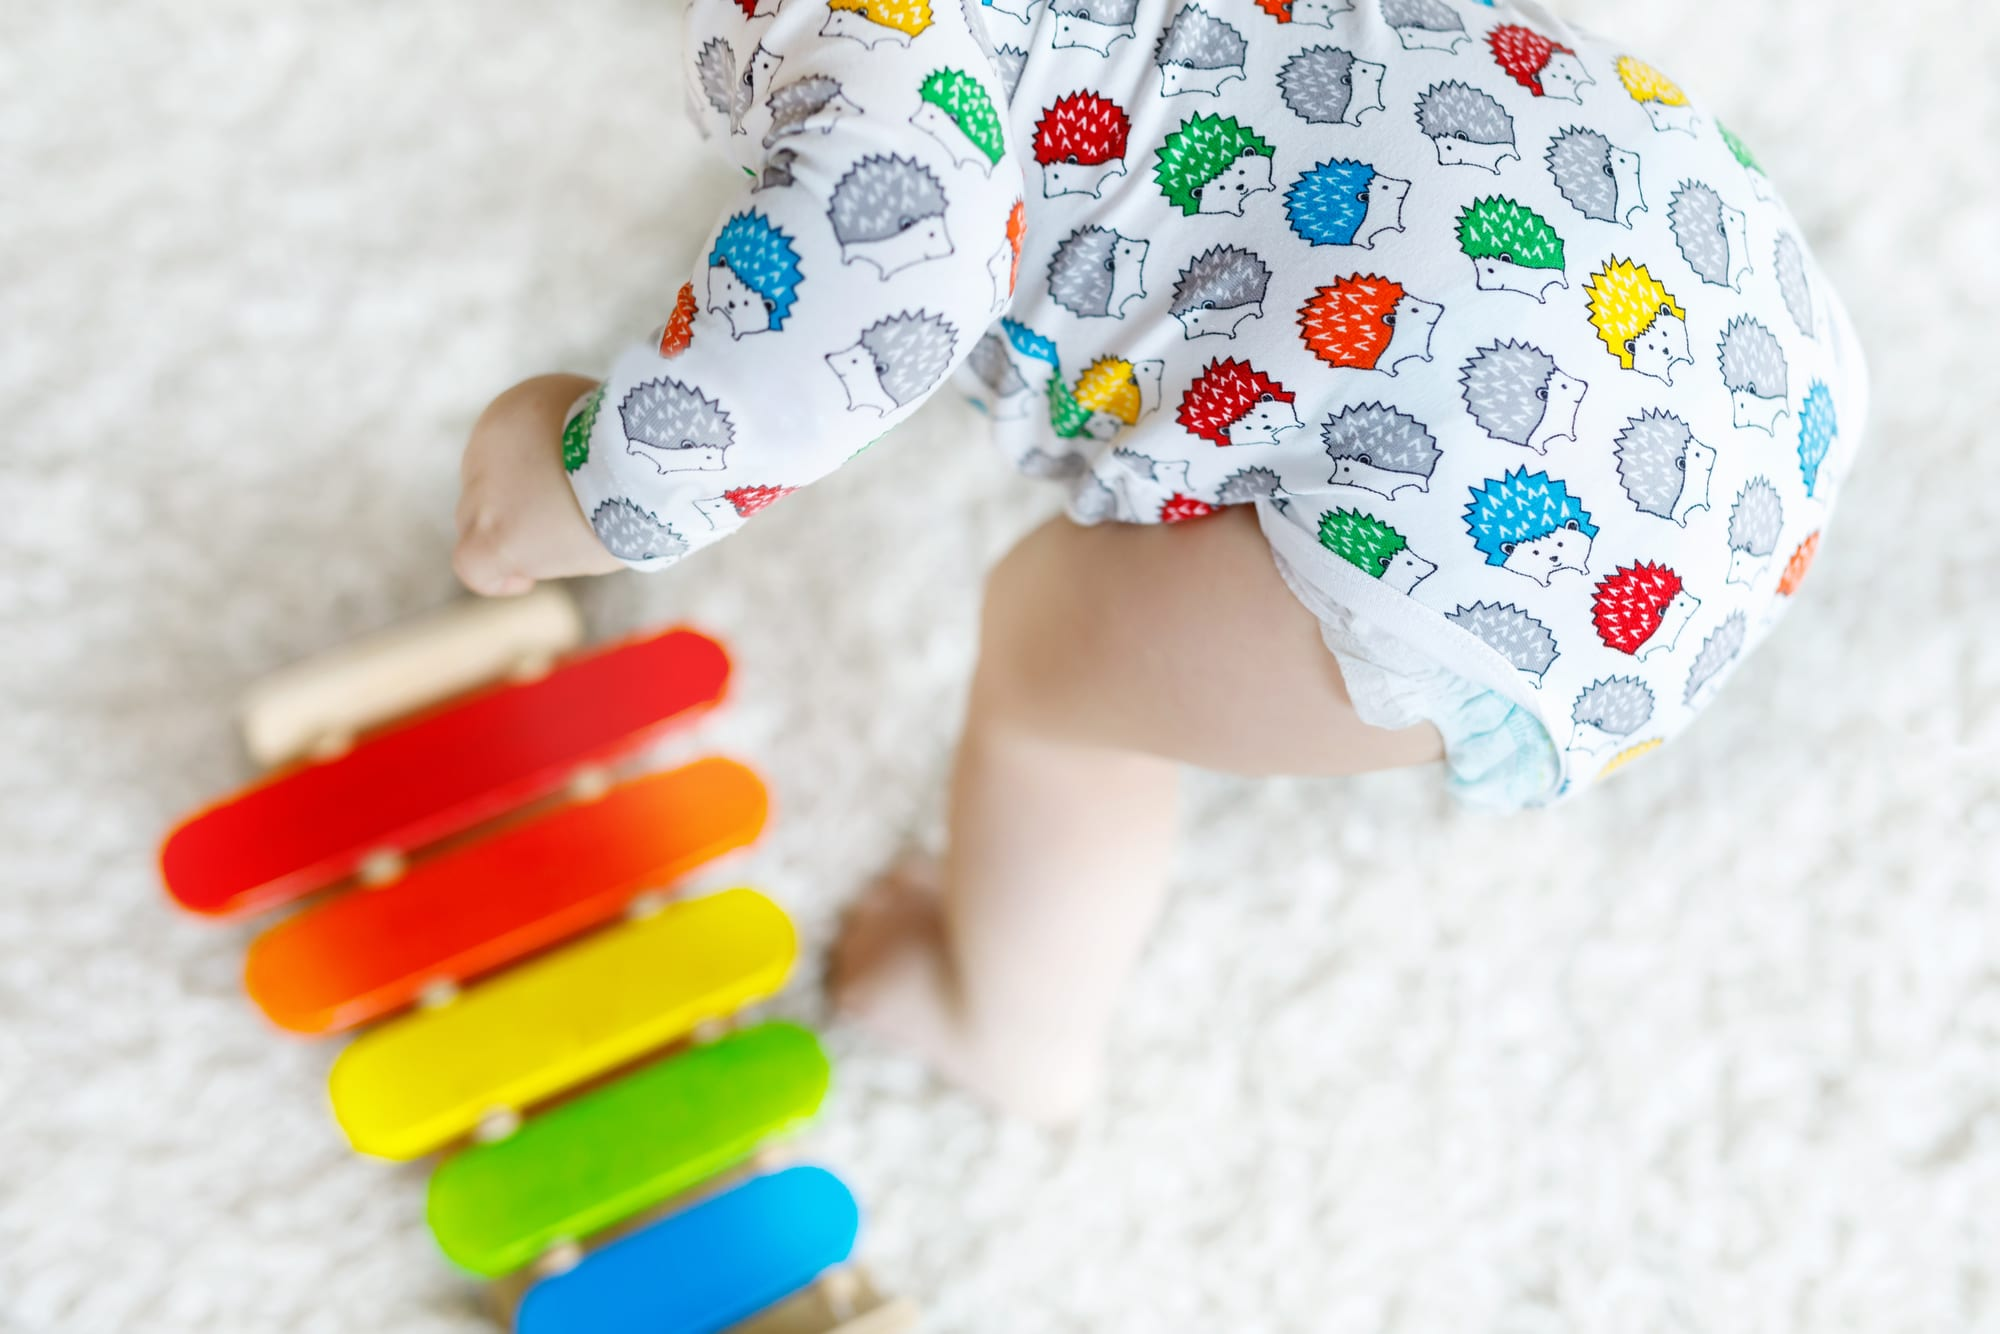 Stem activities for babies and toddlers #STEM #STEMactivitiesforbabies